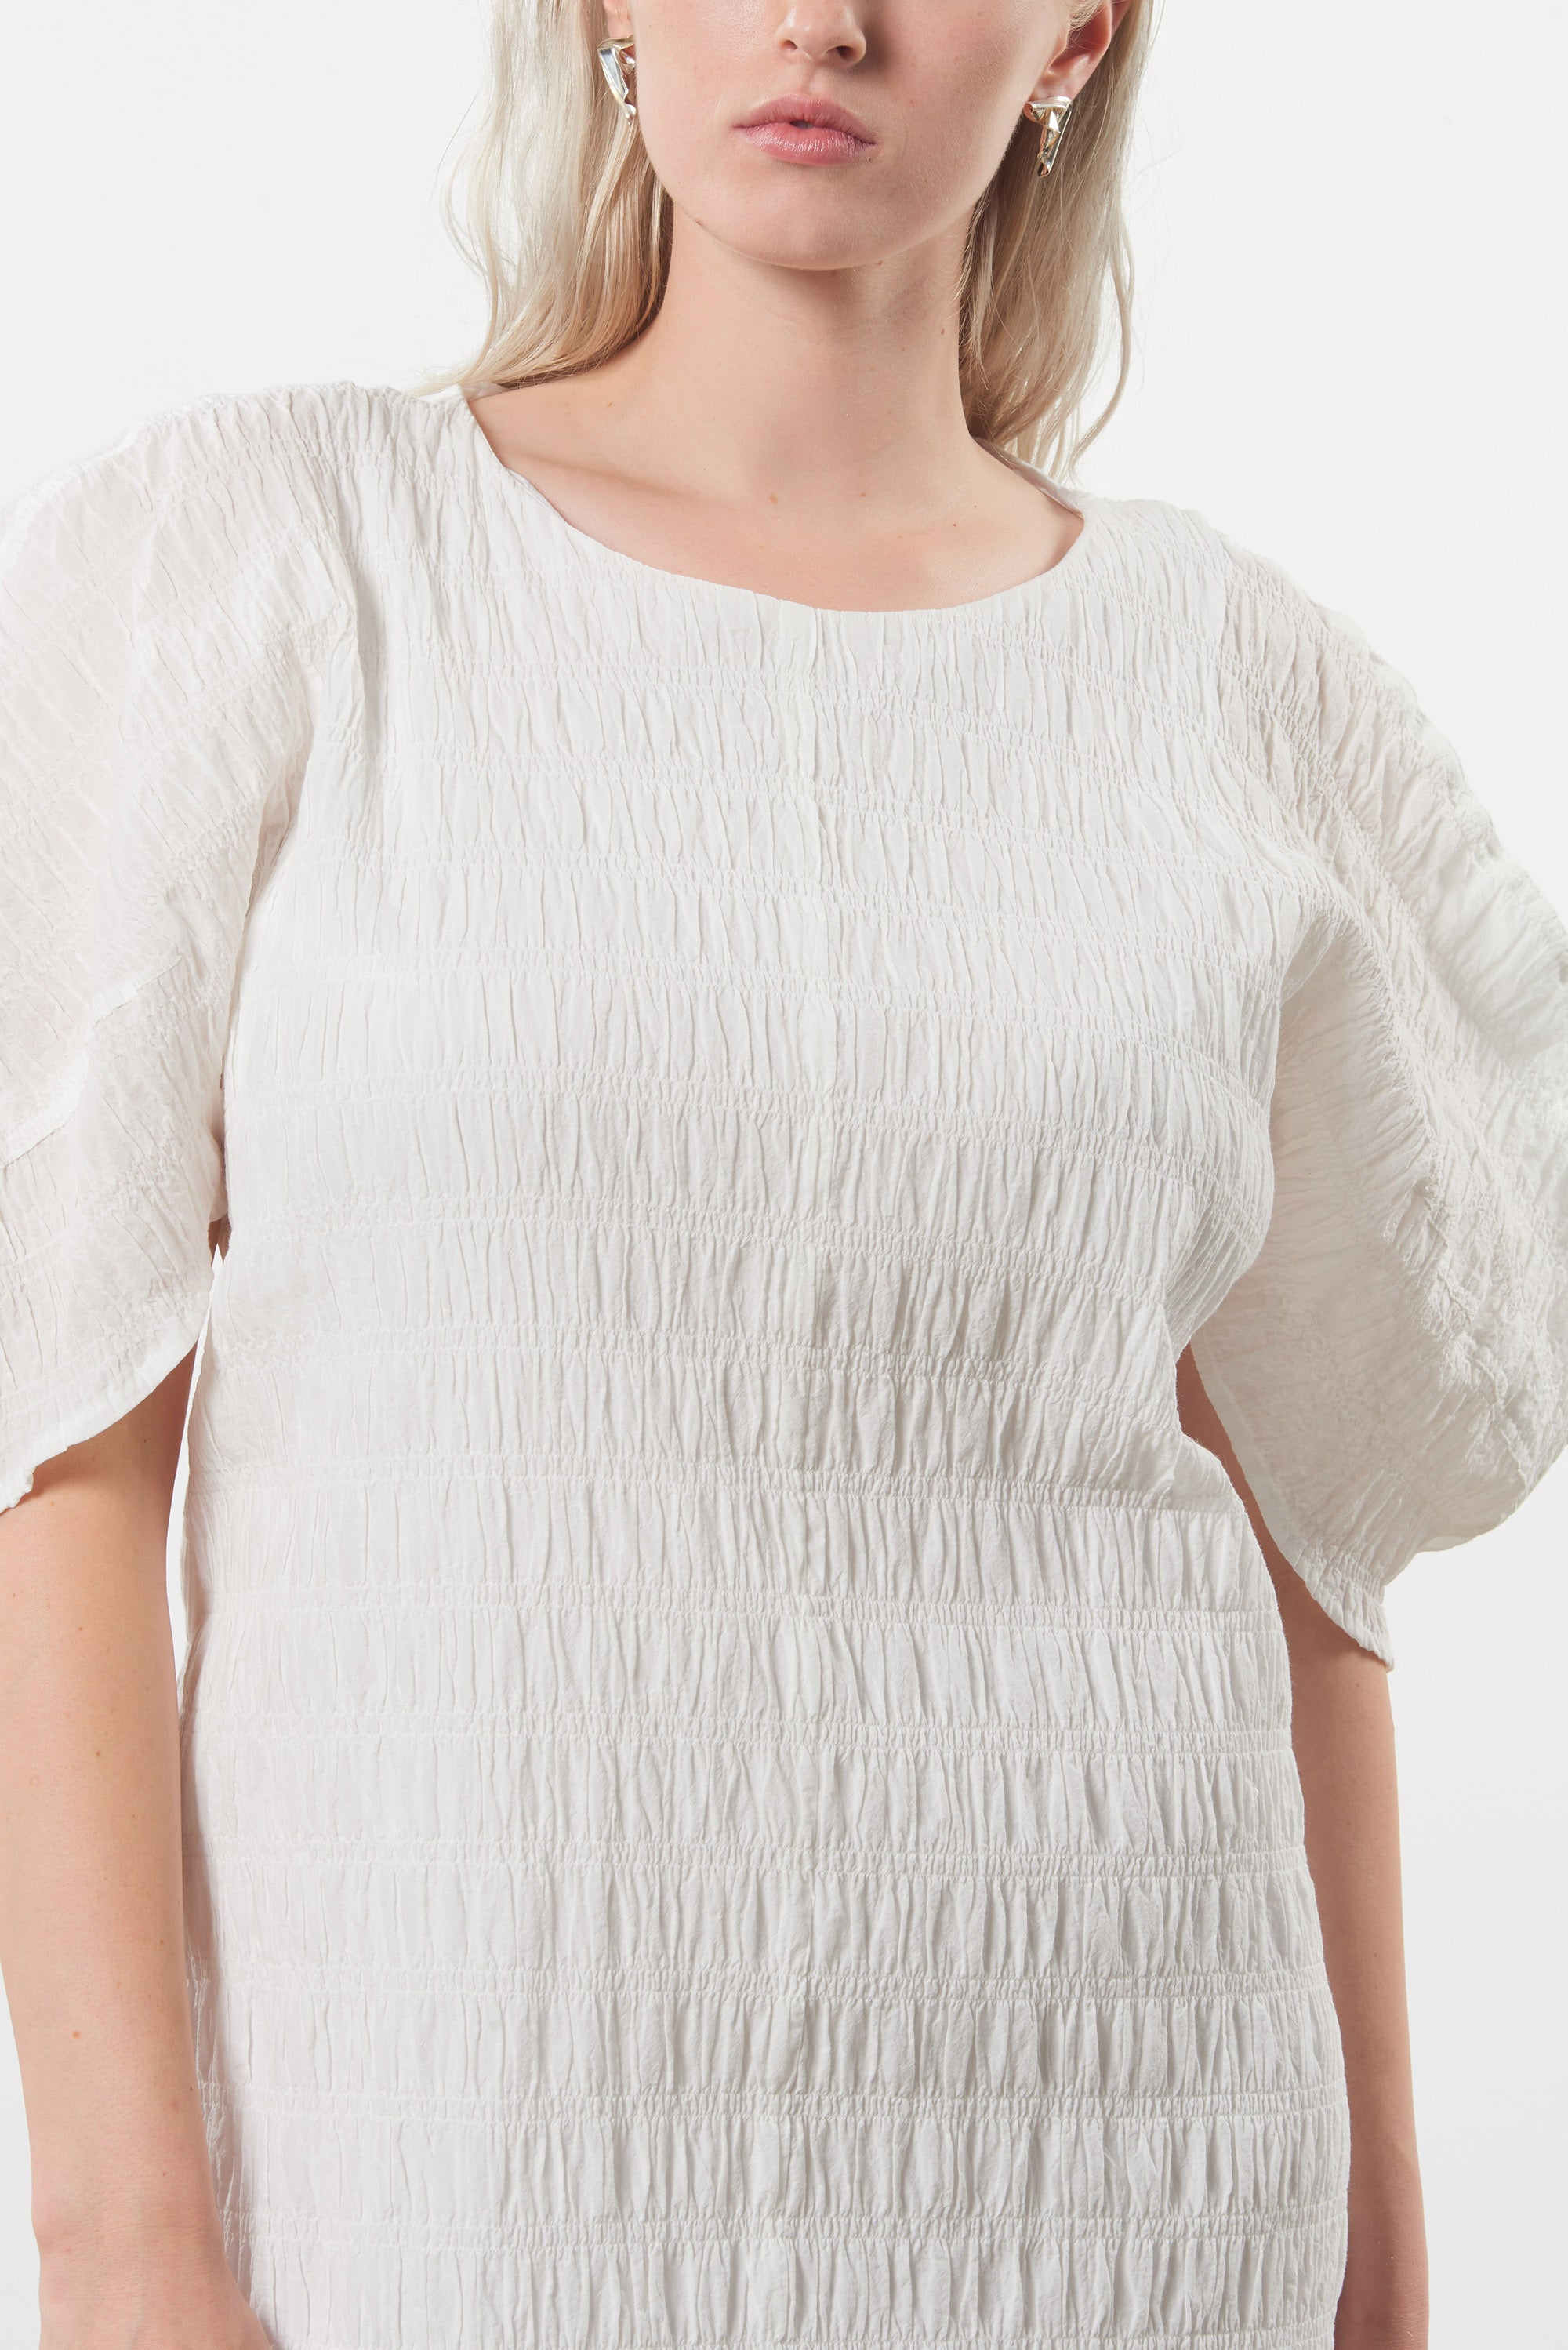 Mara Hoffman Extended White Aranza dress in organic cotton (front detail)